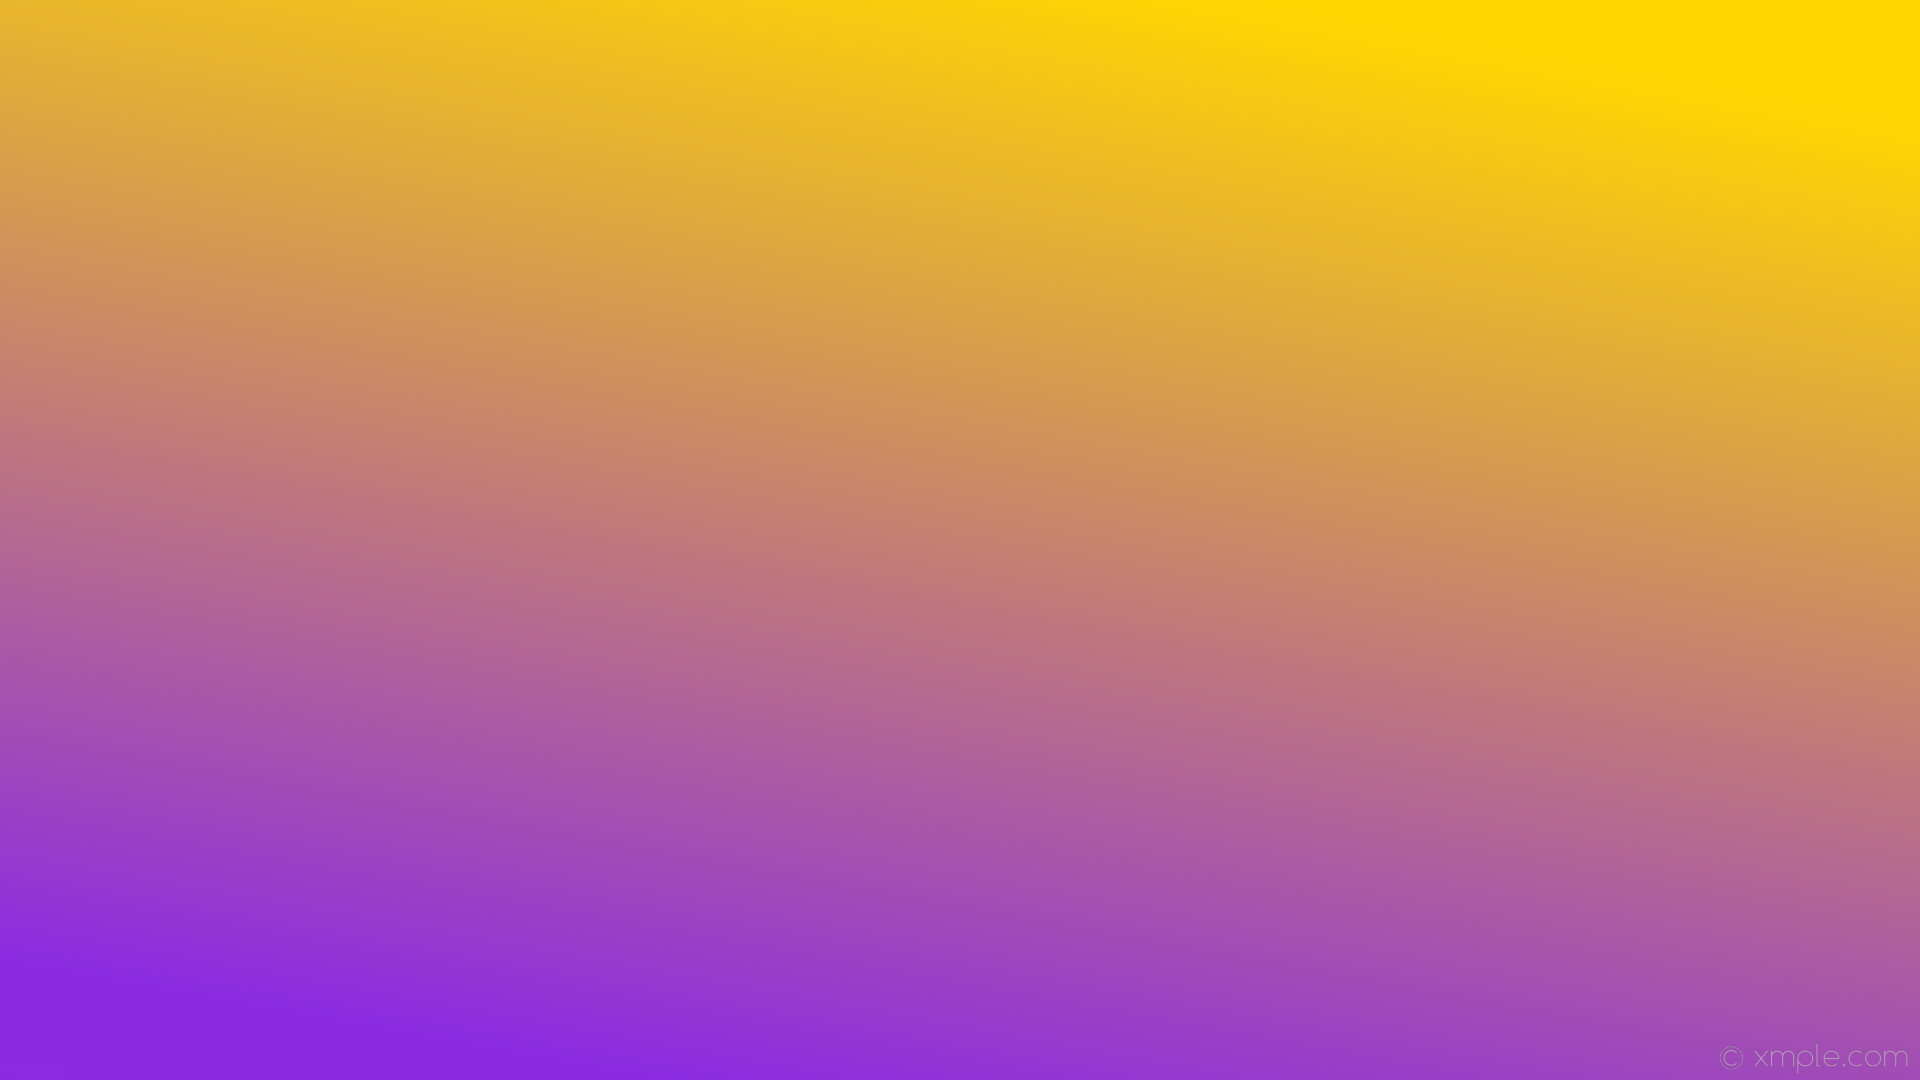 wallpaper yellow gradient linear purple gold blue violet #ffd700 #8a2be2 60°